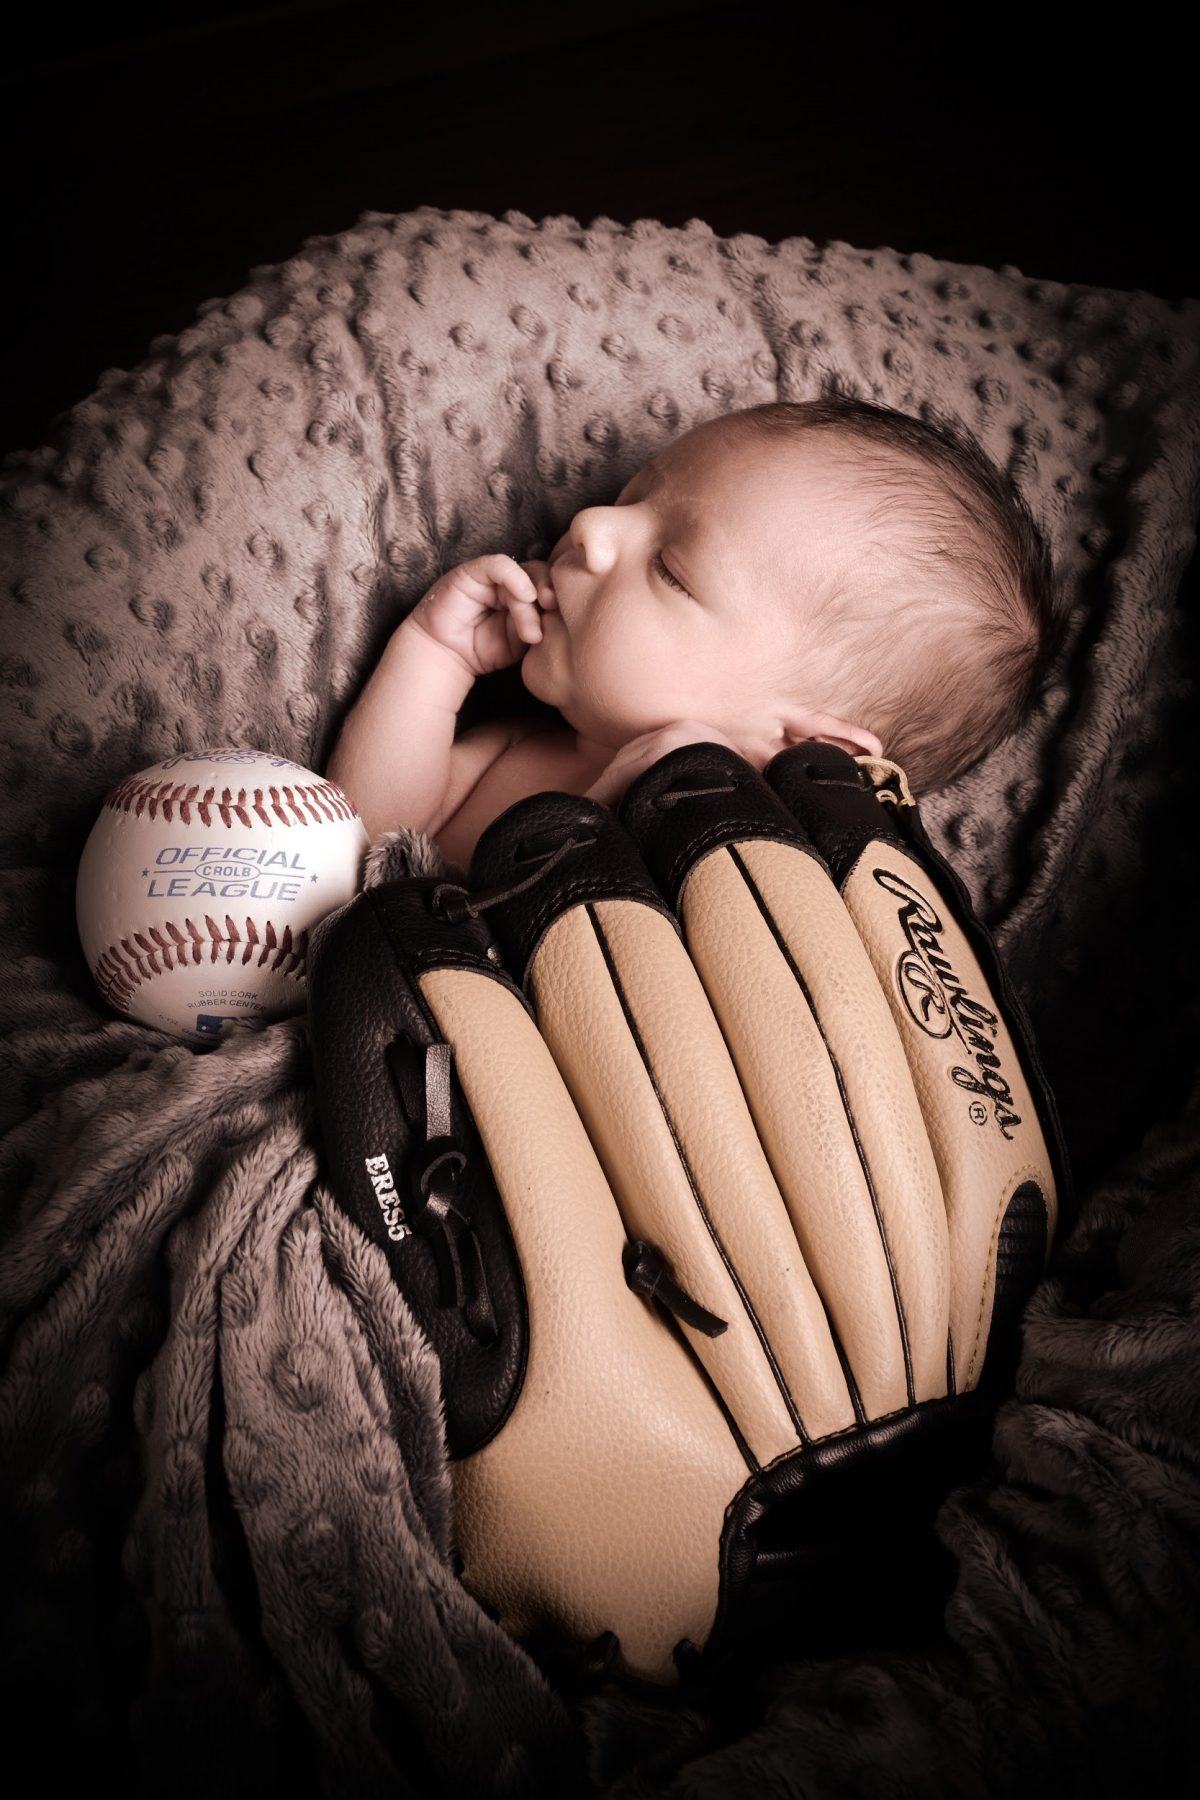 newborn baby with baseball glove and baseball professional portrait taken by andrae michaels photography studios